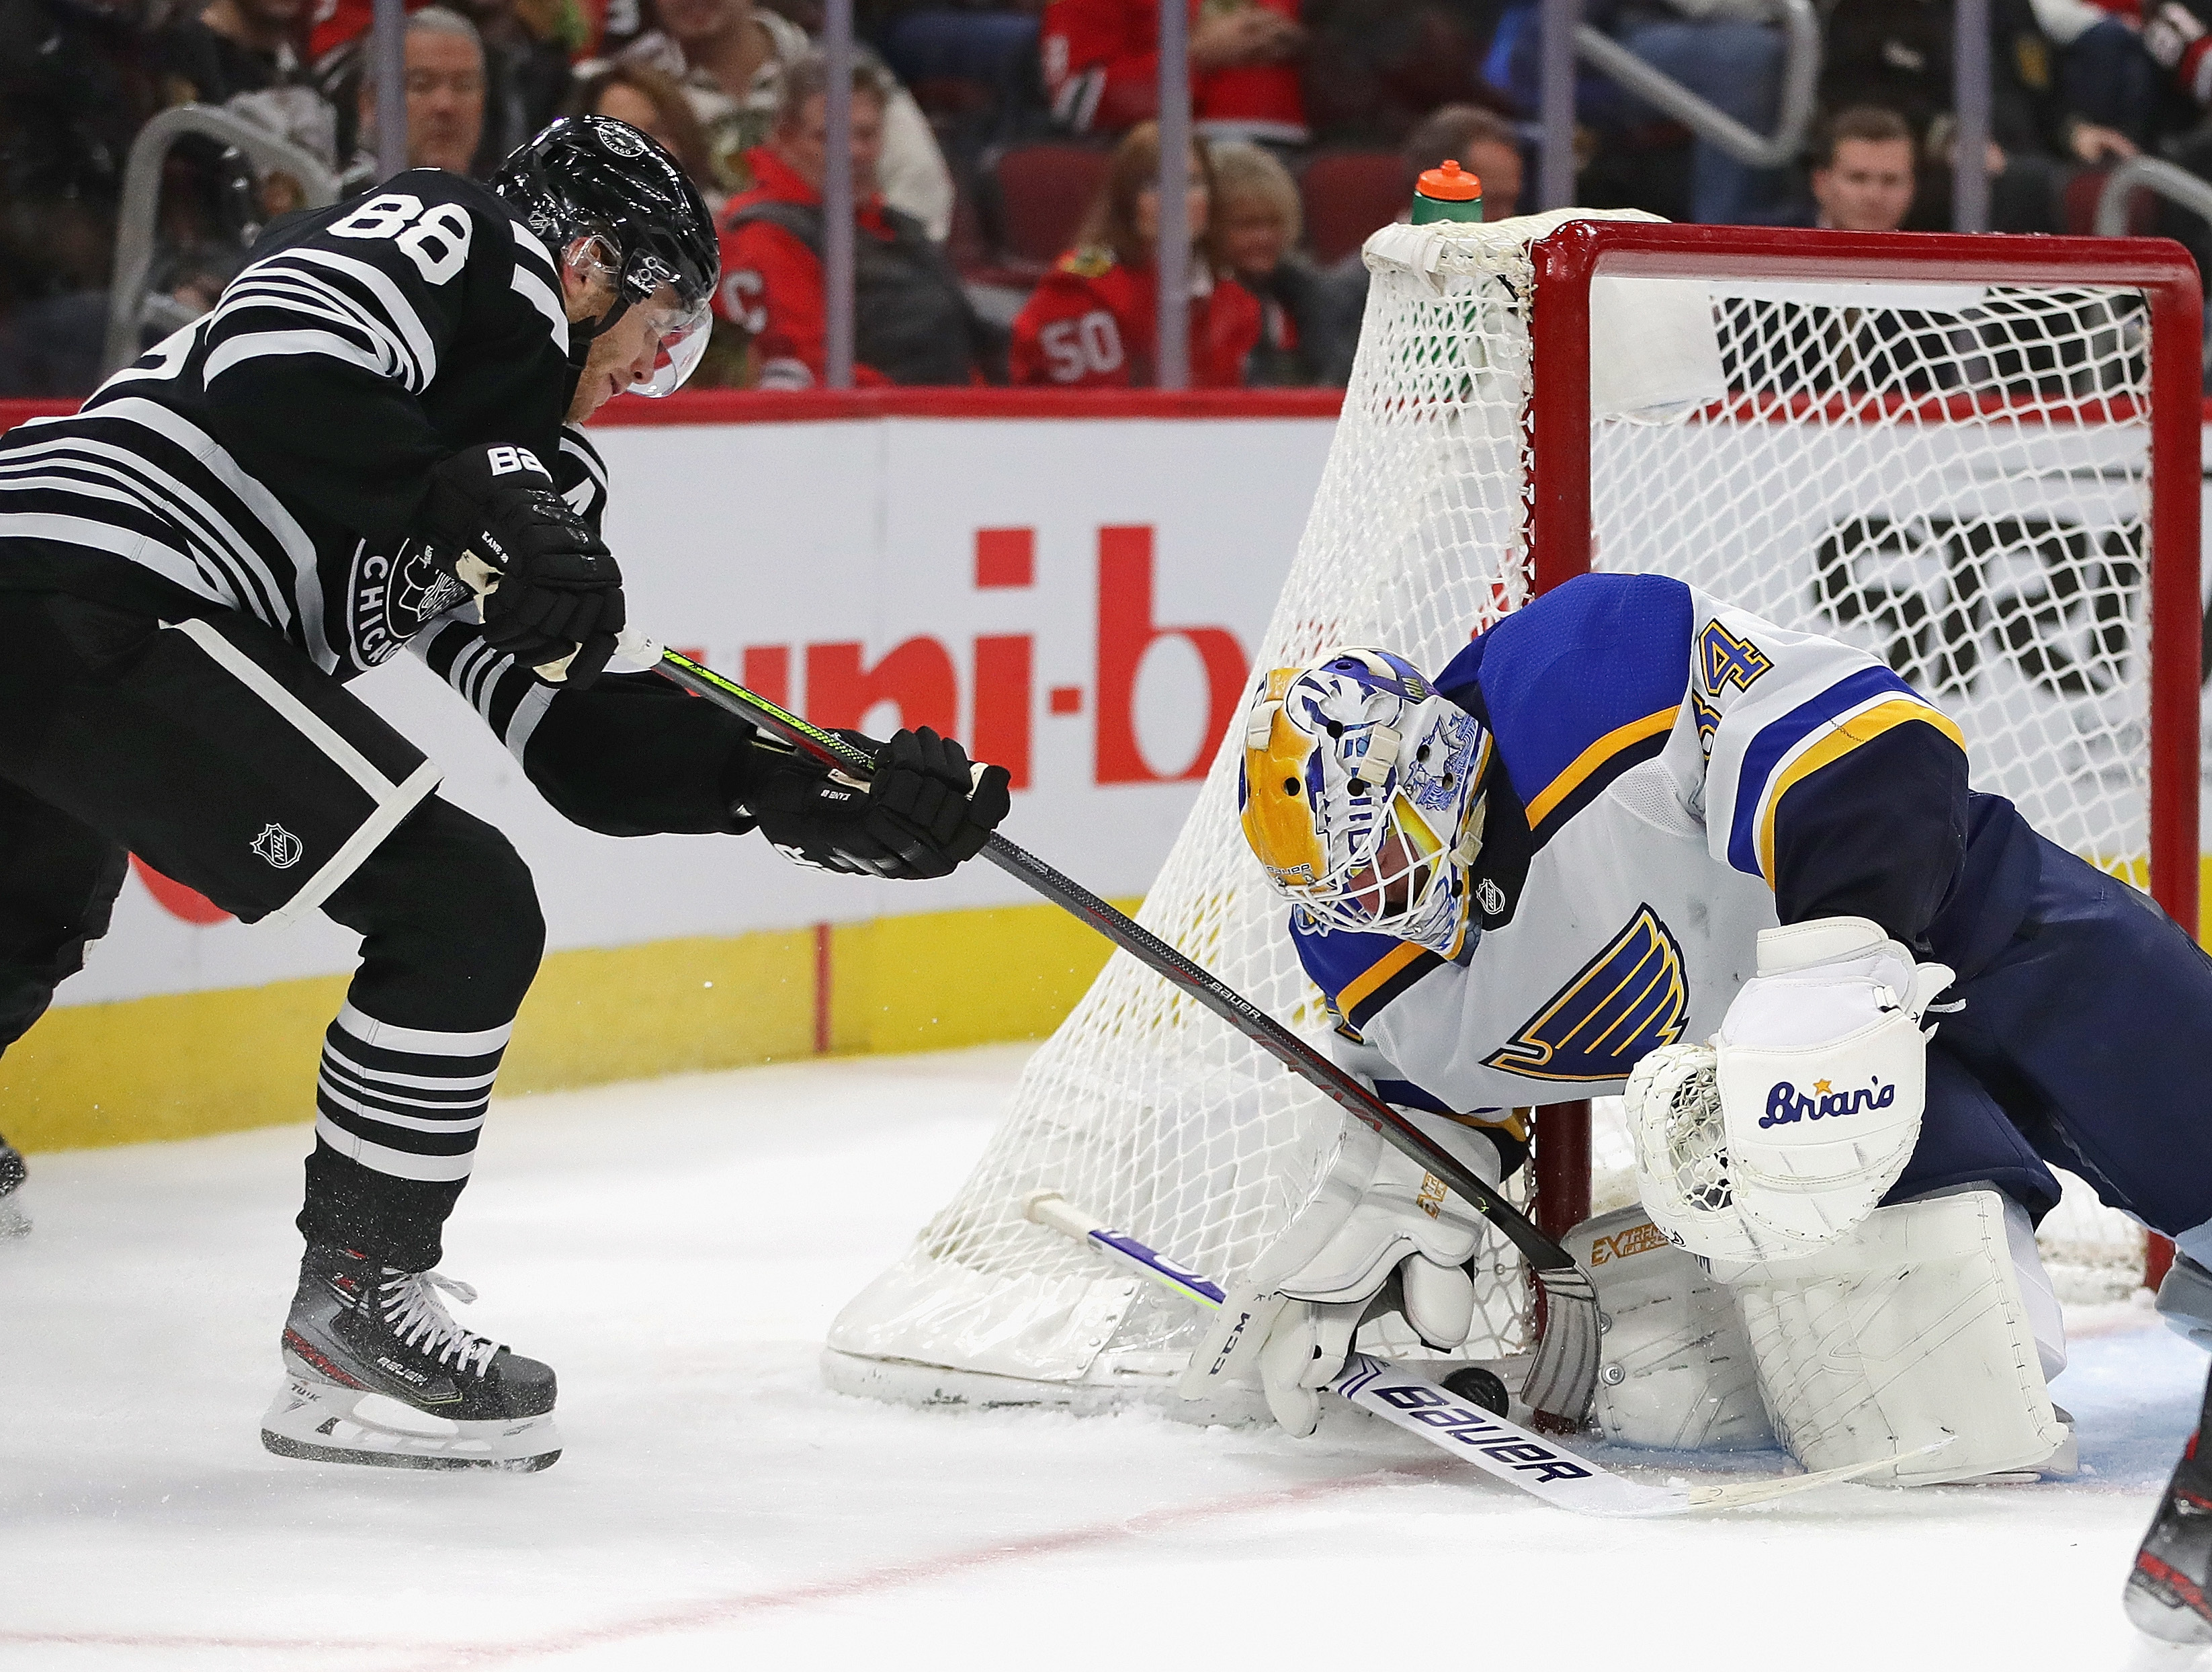 The Blackhawks recorded 38 shots on goal but couldn't get one past Jake Allen.